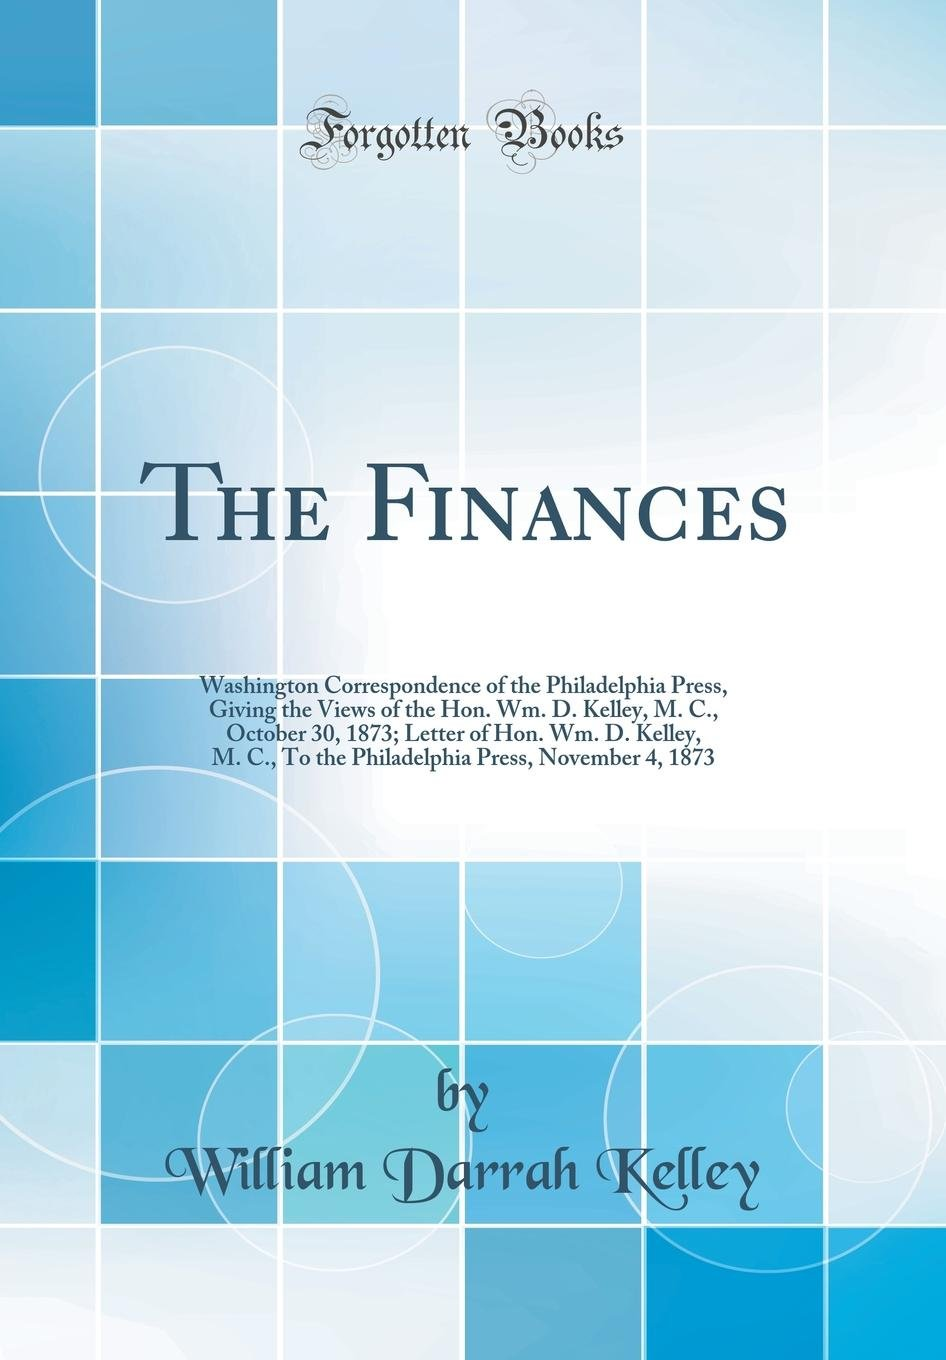 Download The Finances: Washington Correspondence of the Philadelphia Press, Giving the Views of the Hon. Wm. D. Kelley, M. C, October 30, 1873; Letter of Hon. Press, November 4, 1873 (Classic Reprint) PDF